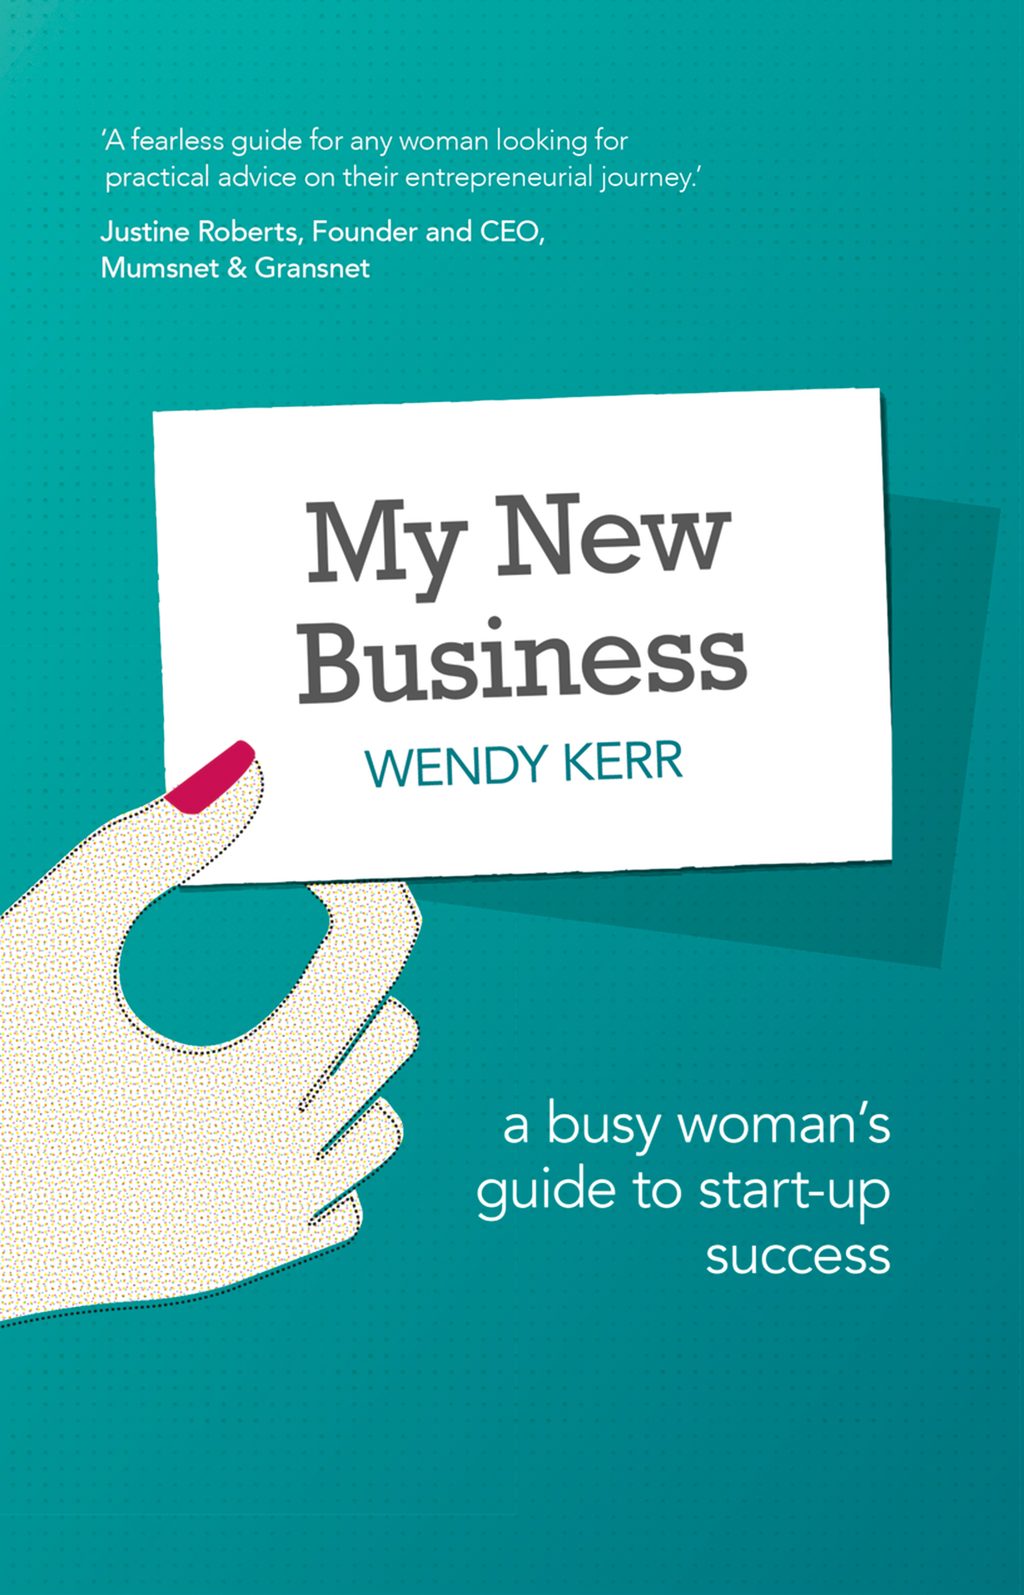 My New Business A Busy Woman's Guide to Start-Up Success